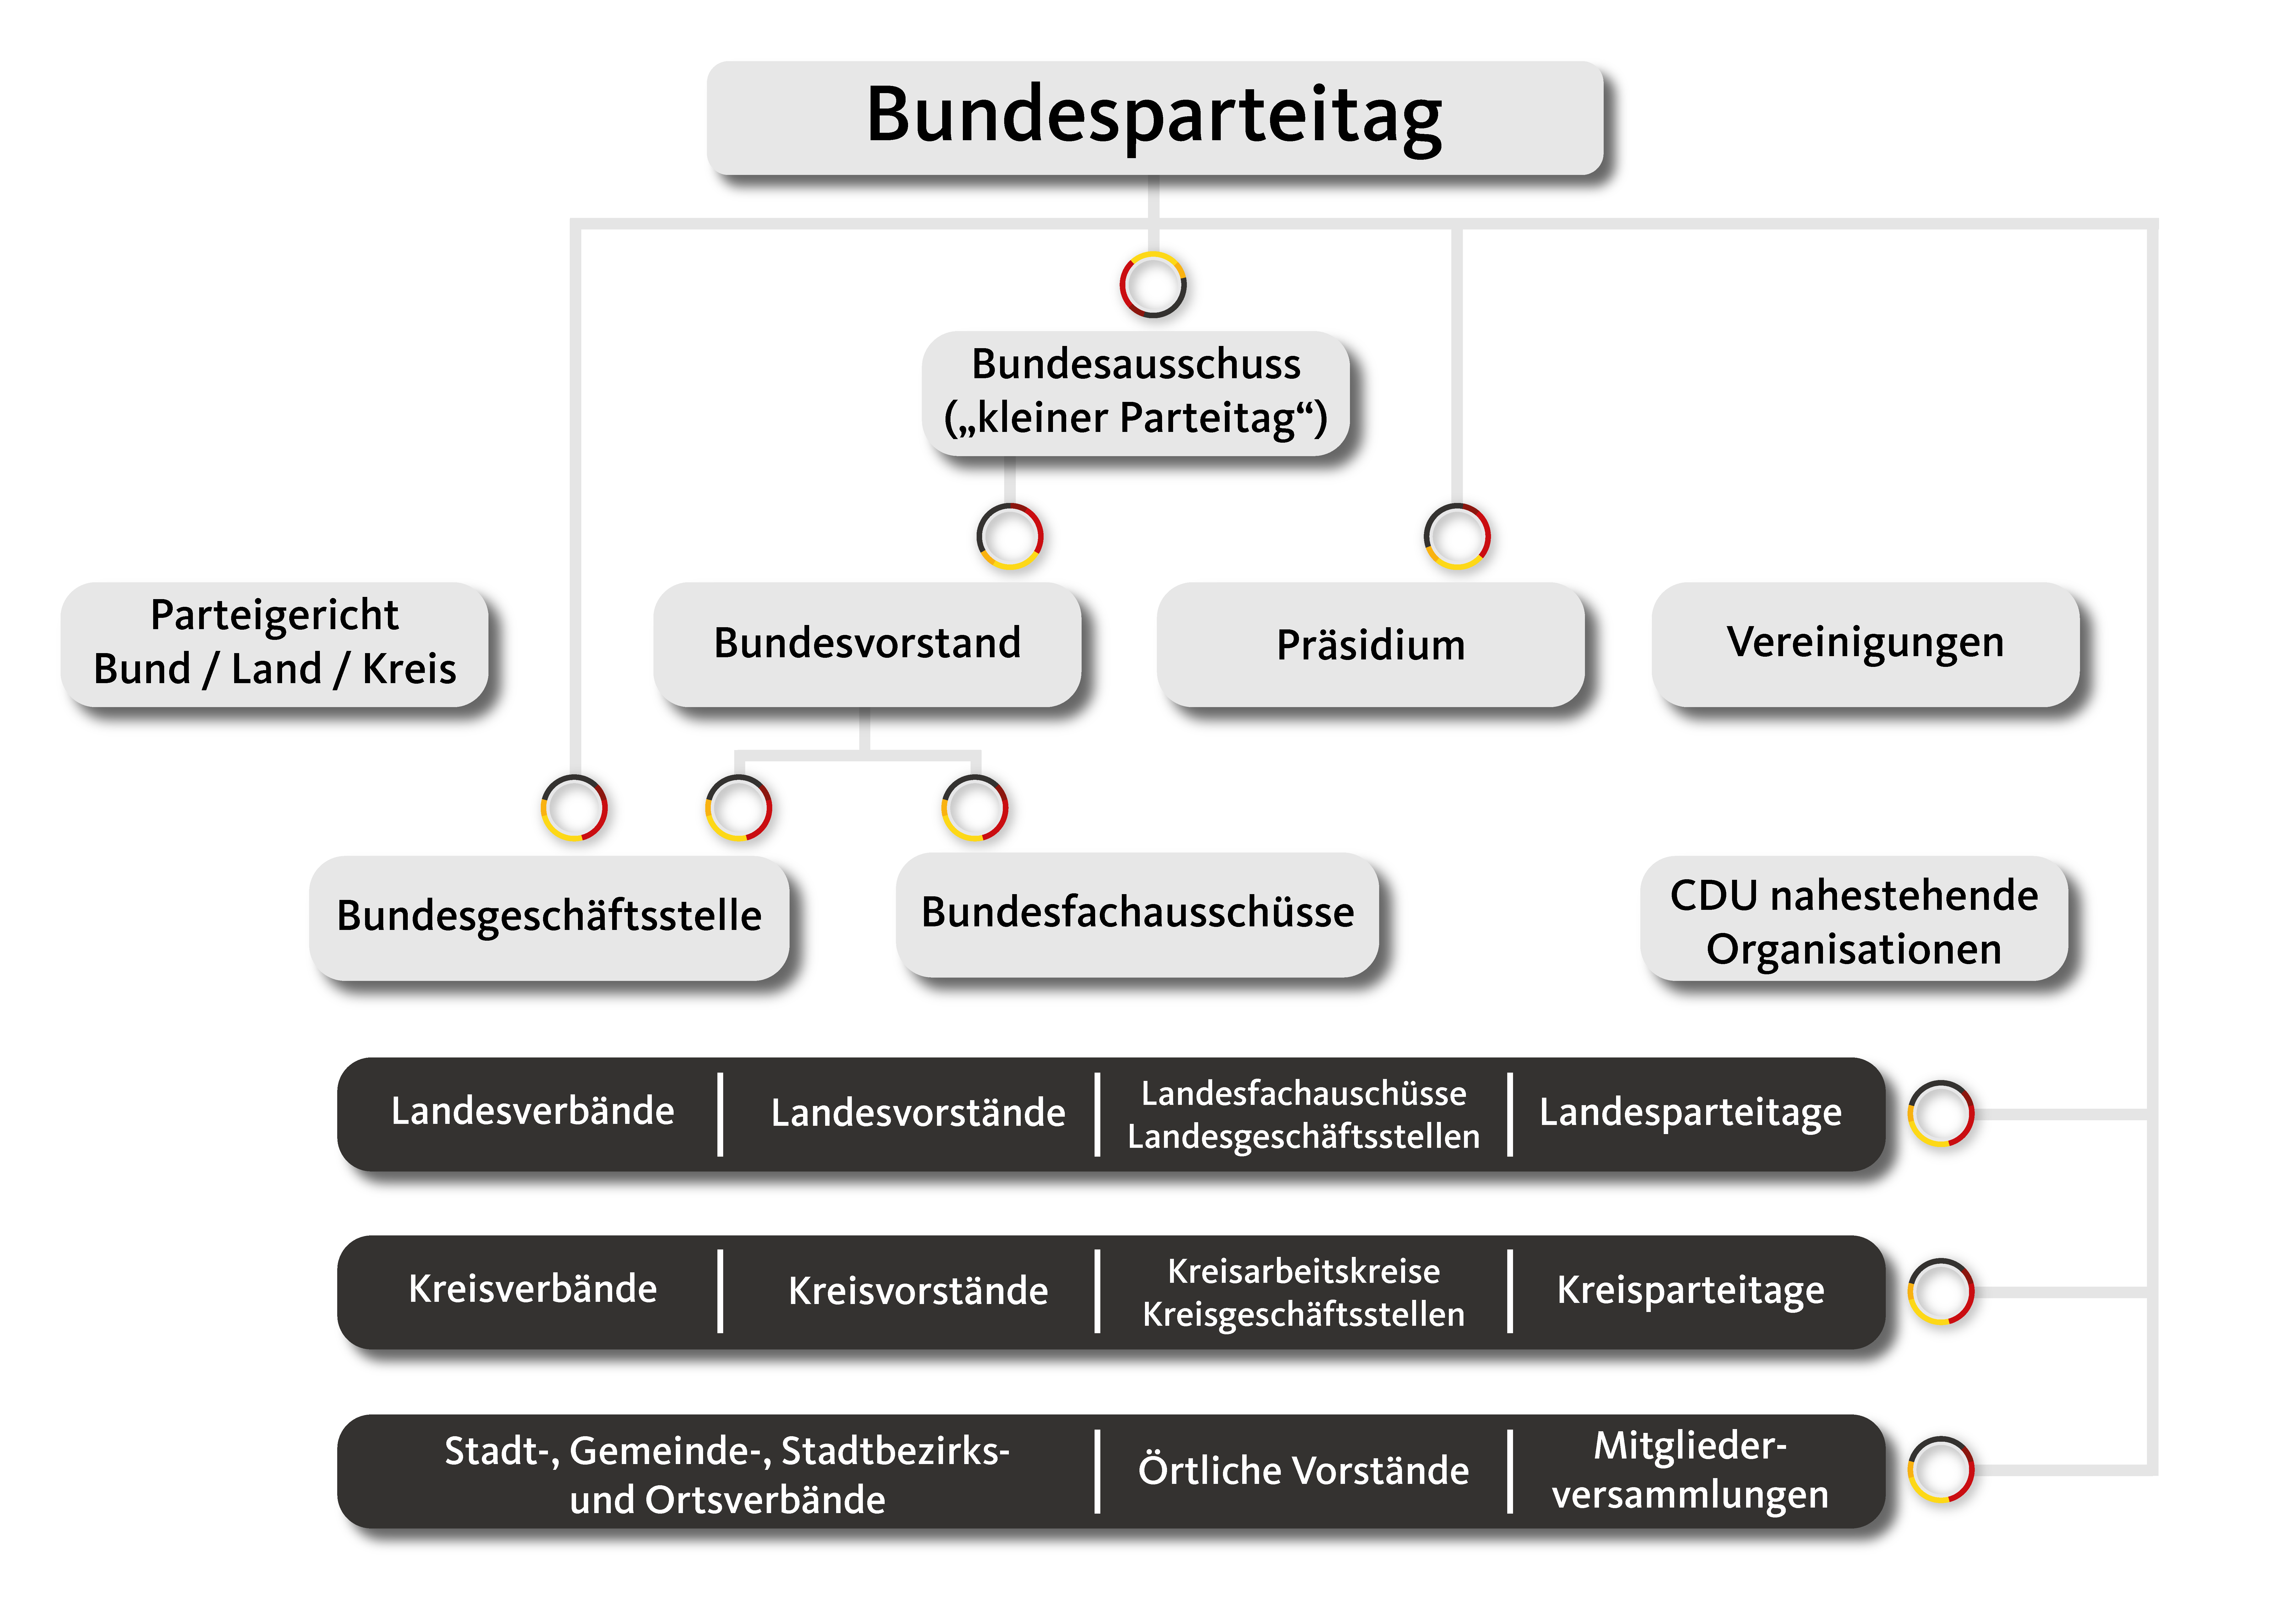 CDU Struktur in Diagrammform